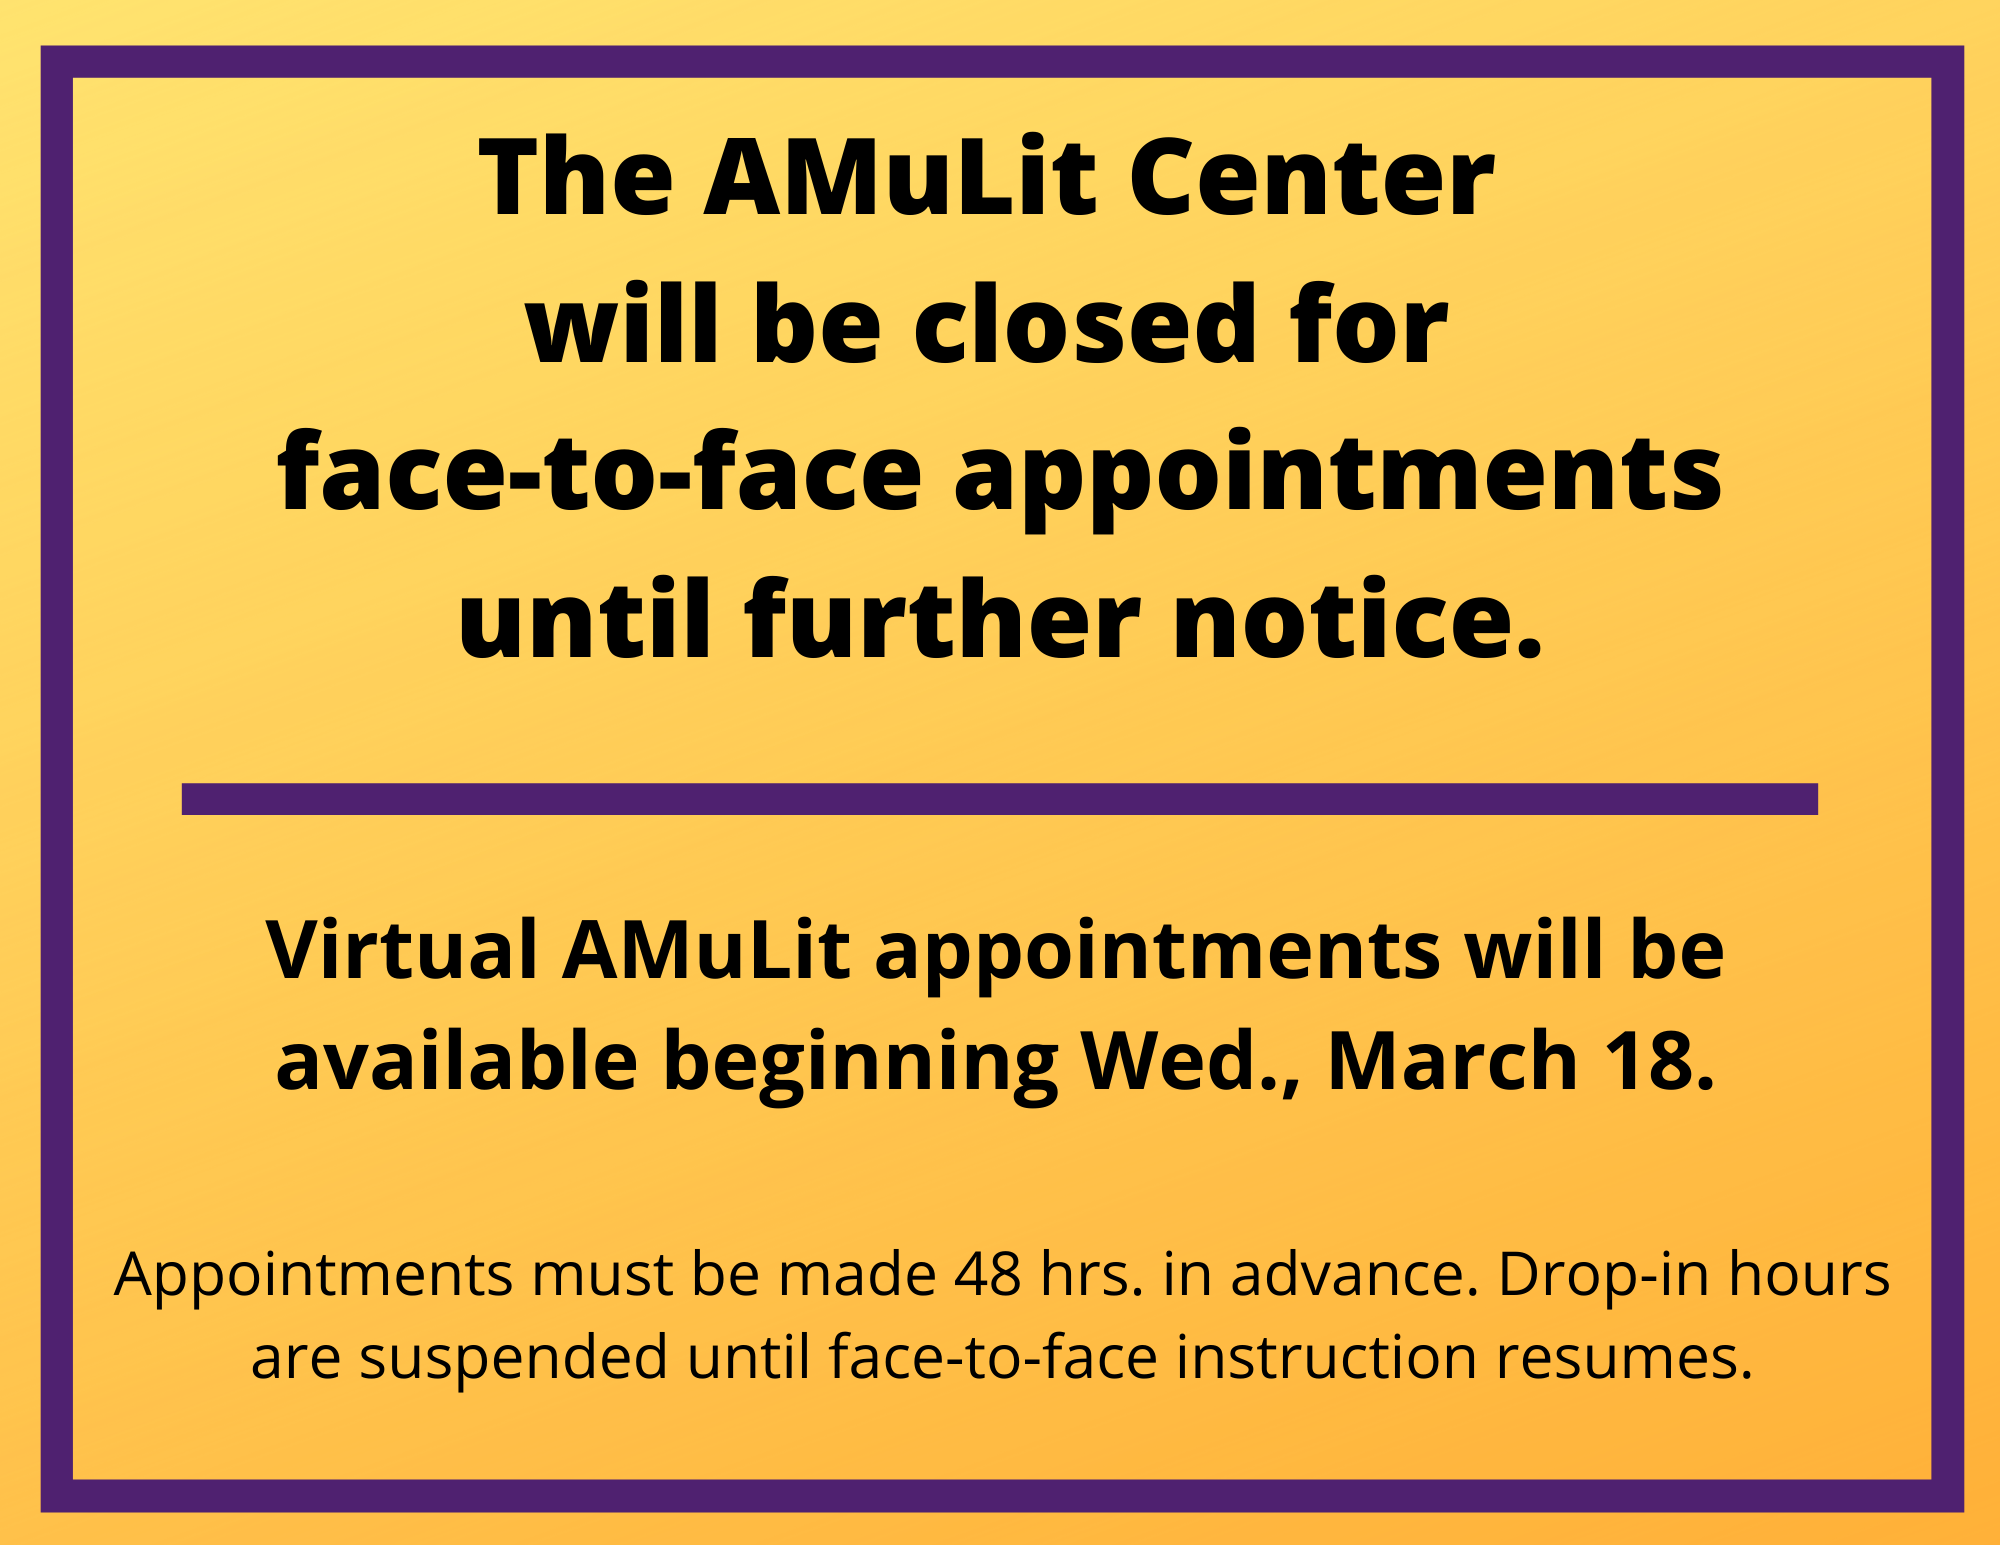 Virtual AMuLit appointments will be available beginning Wed., March 18.  All appointments must be made 48 hrs in advance.